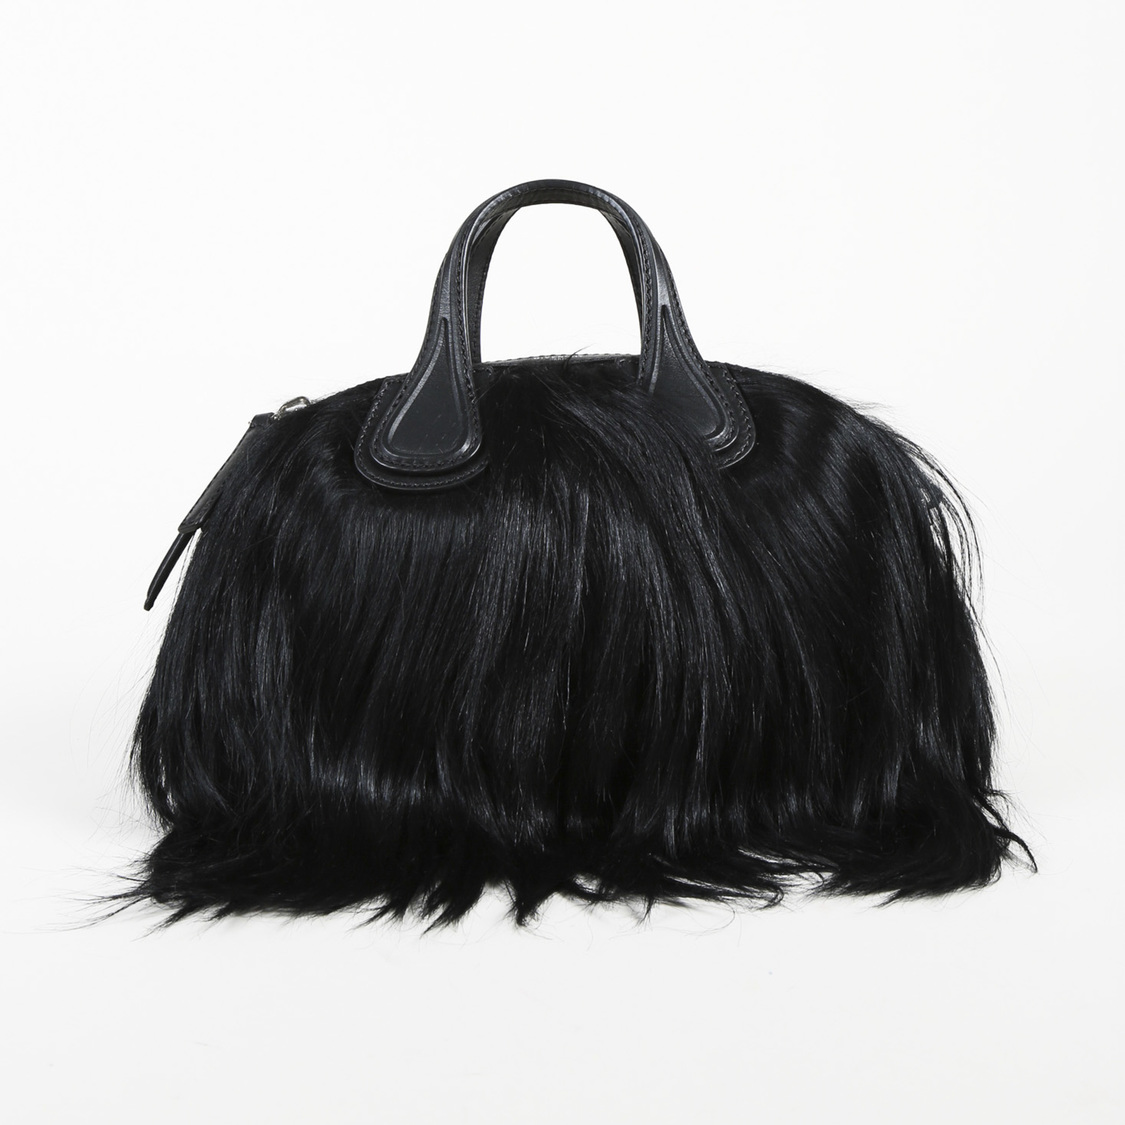 5290ef94e4a3 Details about Givenchy NWOT Black Goat Fur Nightingale Bag SZ: Micro